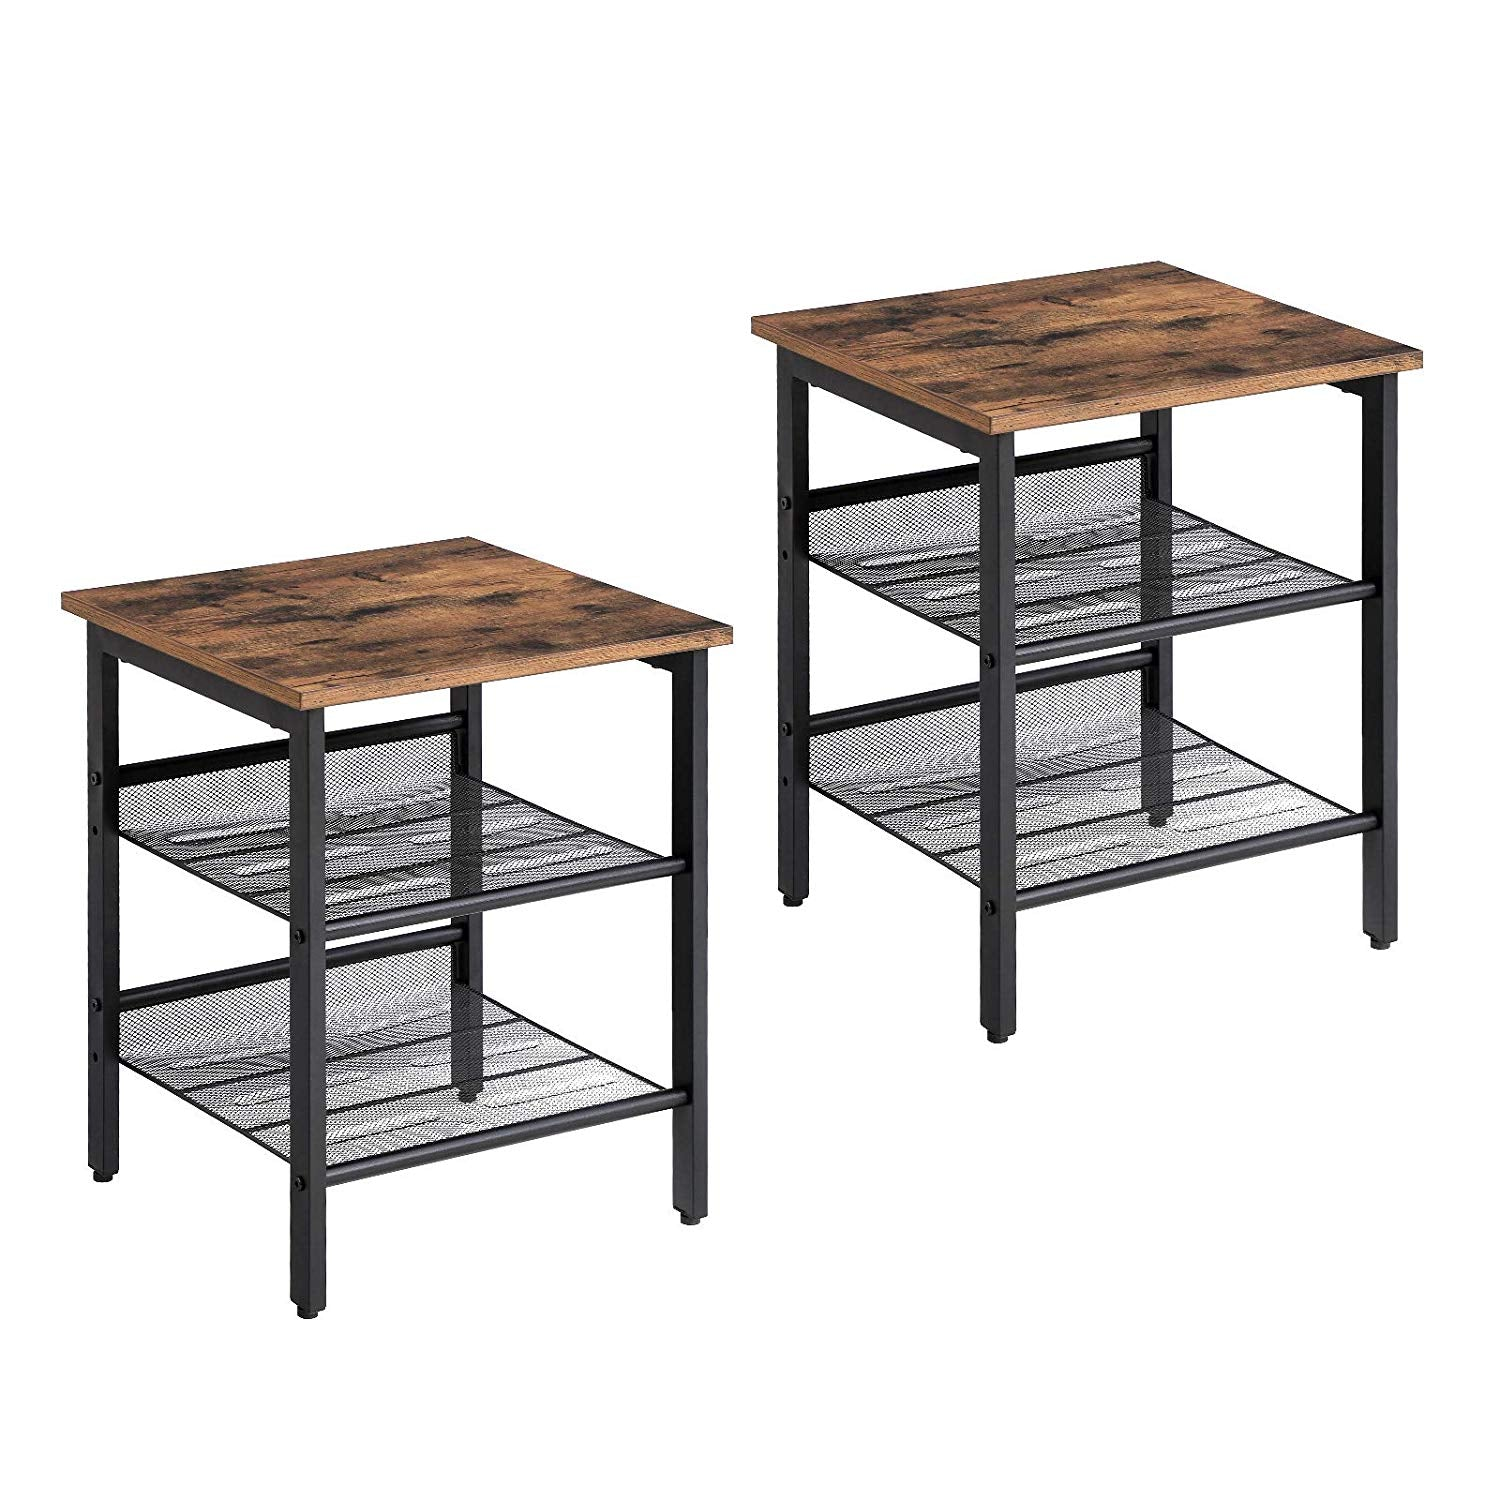 Industrial Nightstand, Set of 2 Side Tables, End Table with Adjustable Mesh Shelves, Stable Metal Frame and Easy Assembly, for Room